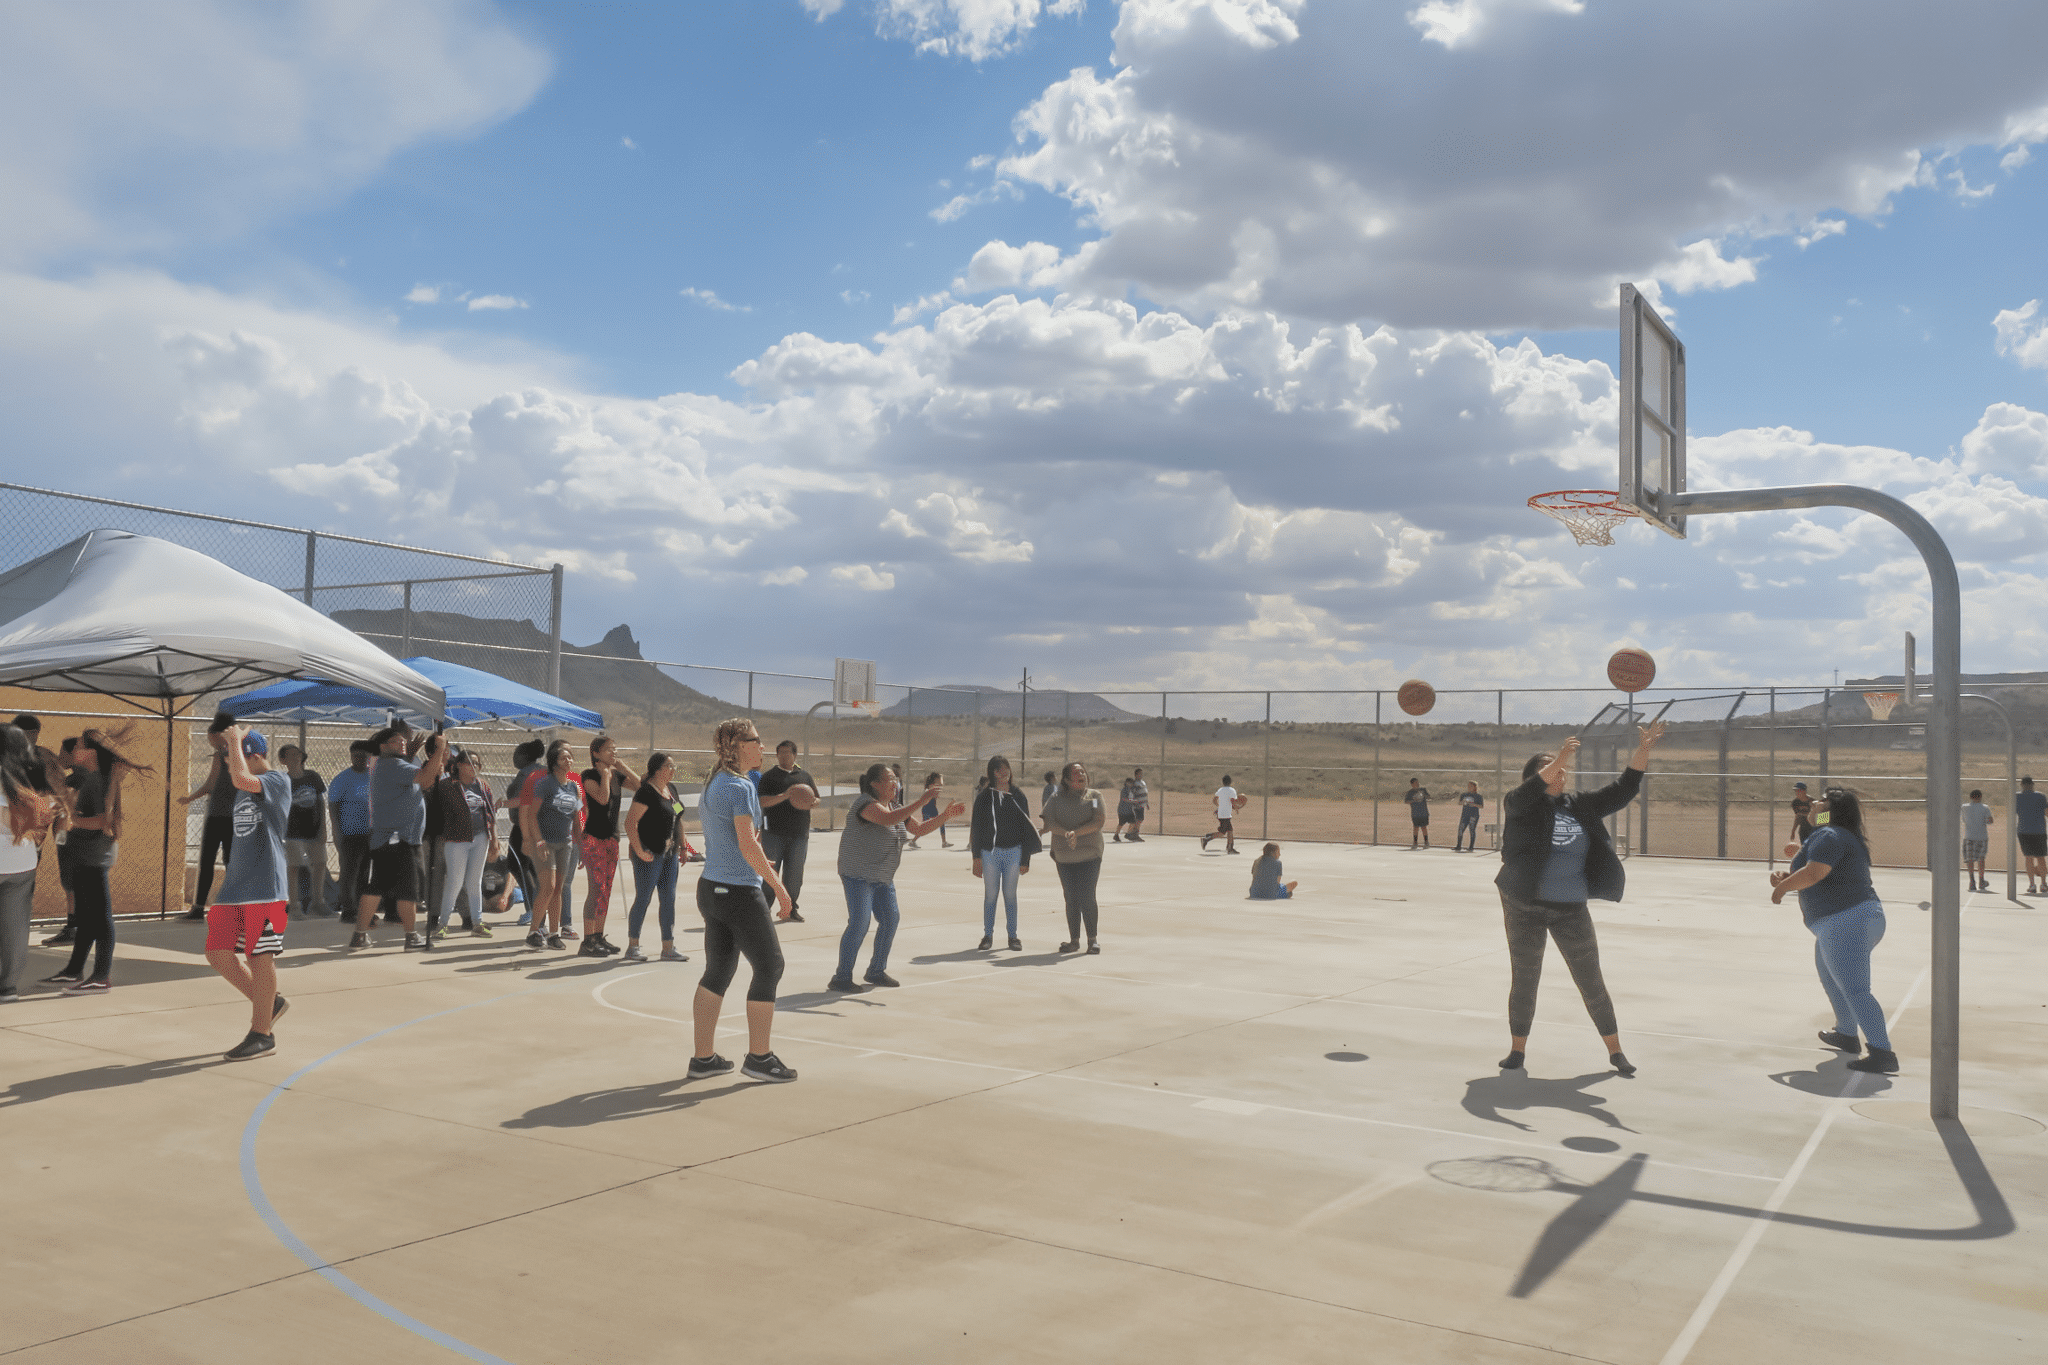 People playing basketball on the palyground